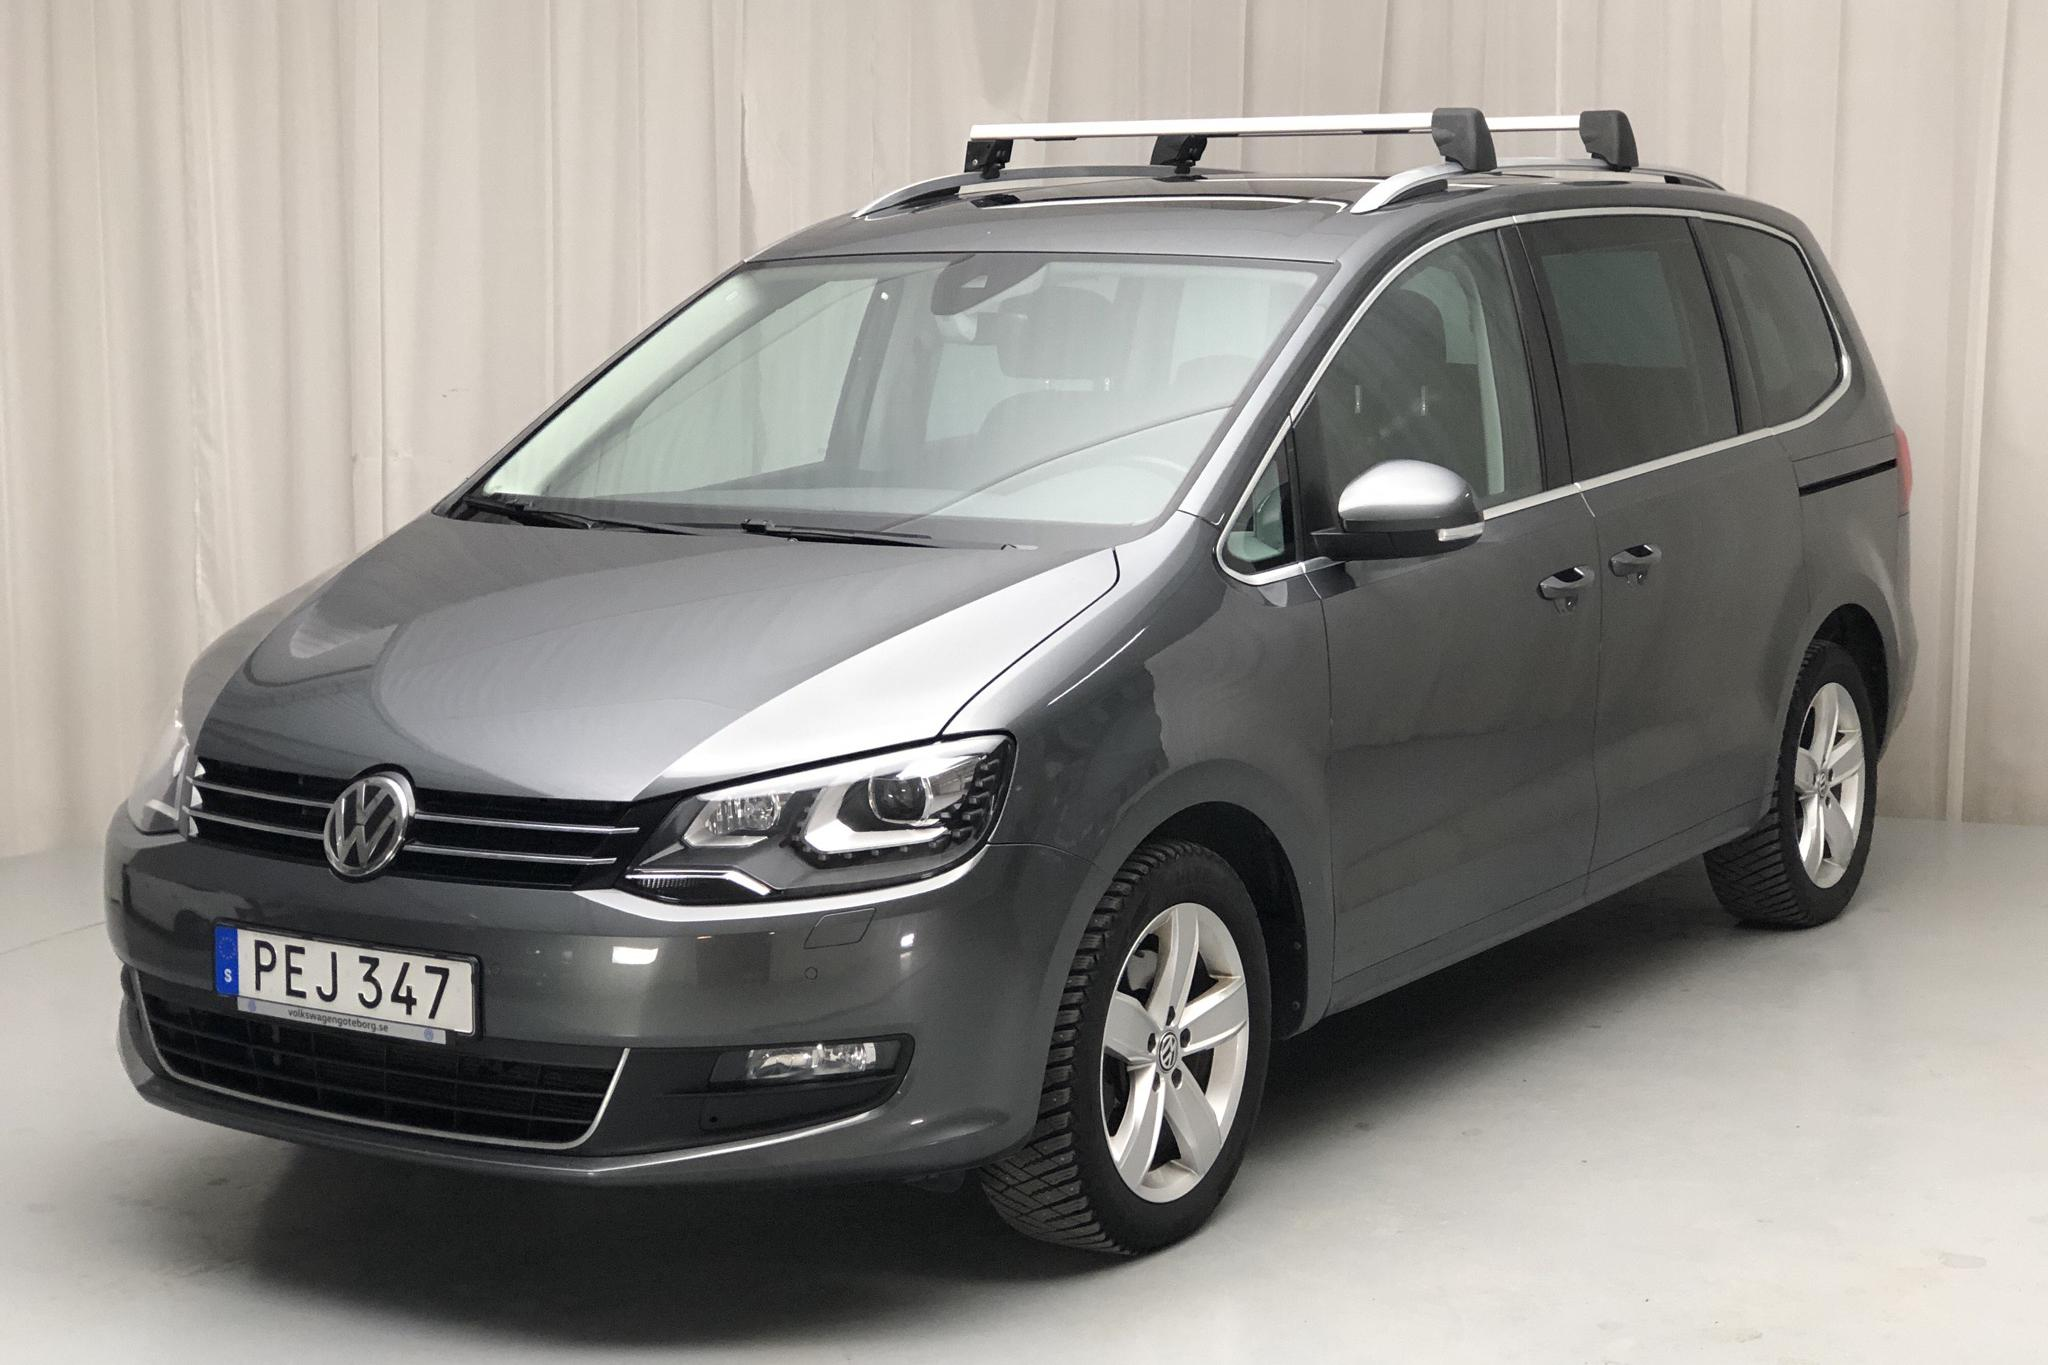 VW Sharan 2.0 TDI (150hk) - 5 942 mil - Automat - Dark Grey - 2017